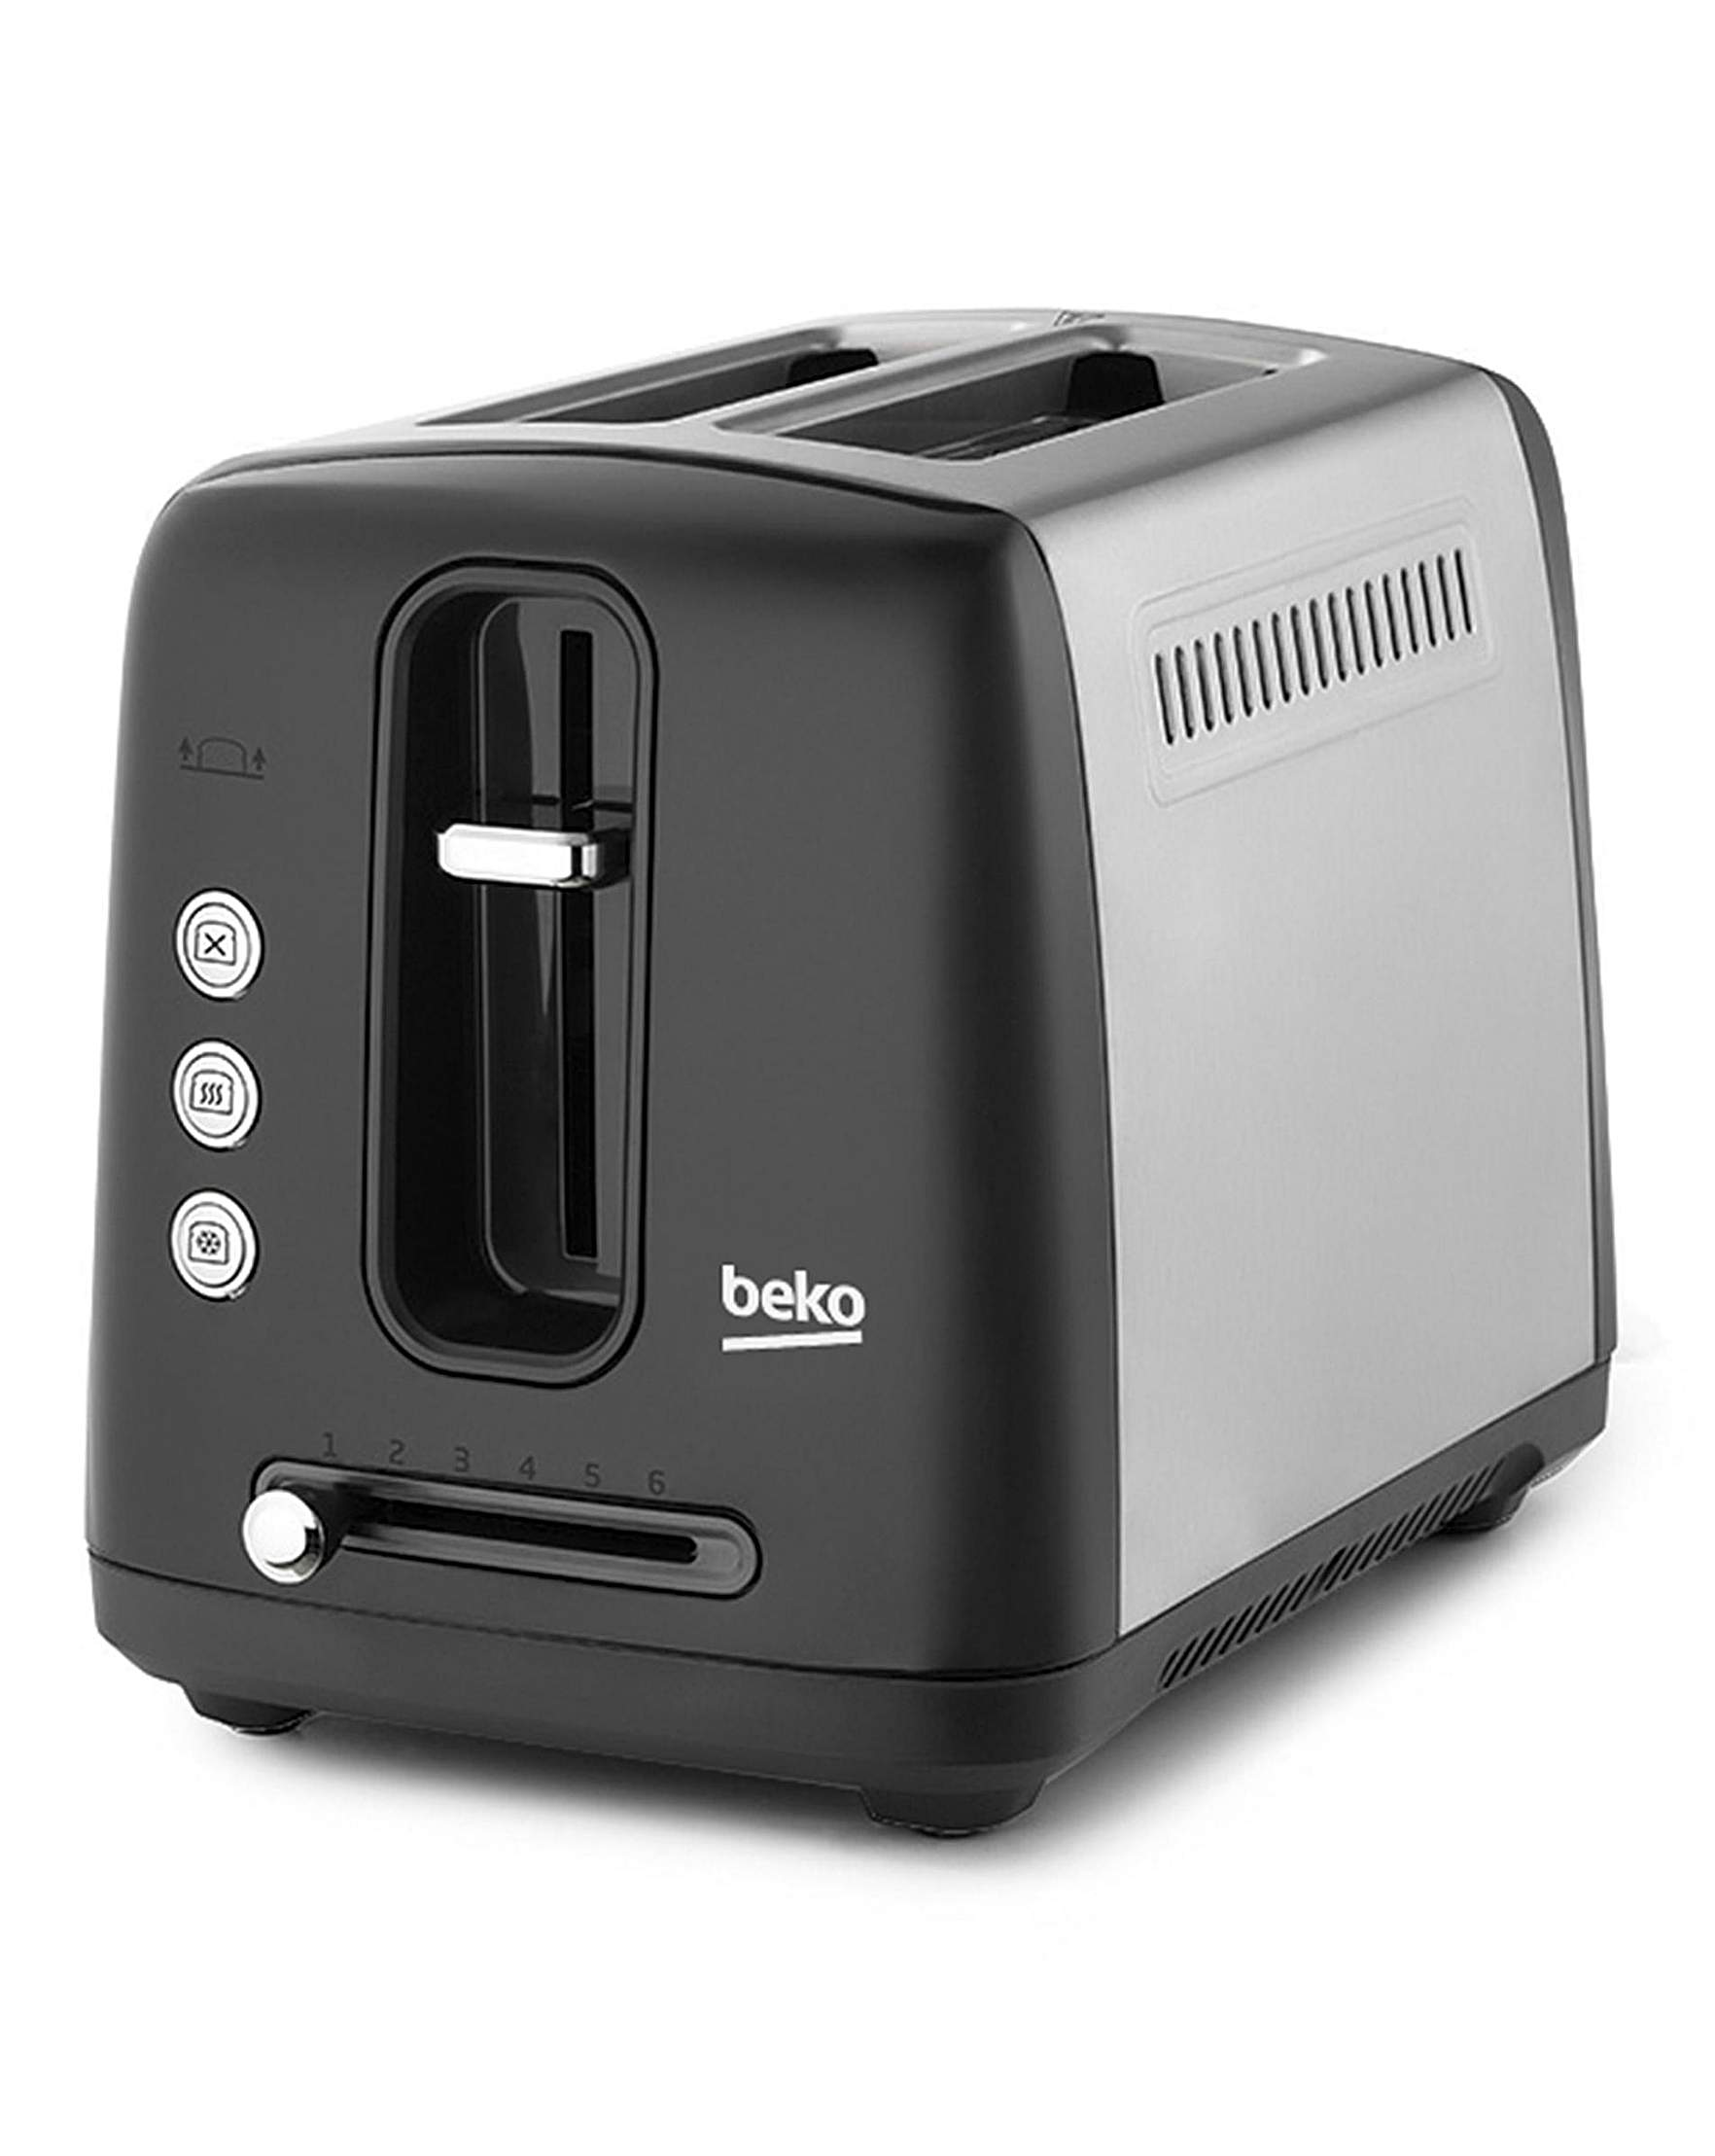 kitchen stock srgb electric home photo and two download appliance toaster black appliances white bred dl bread sliced cs small free